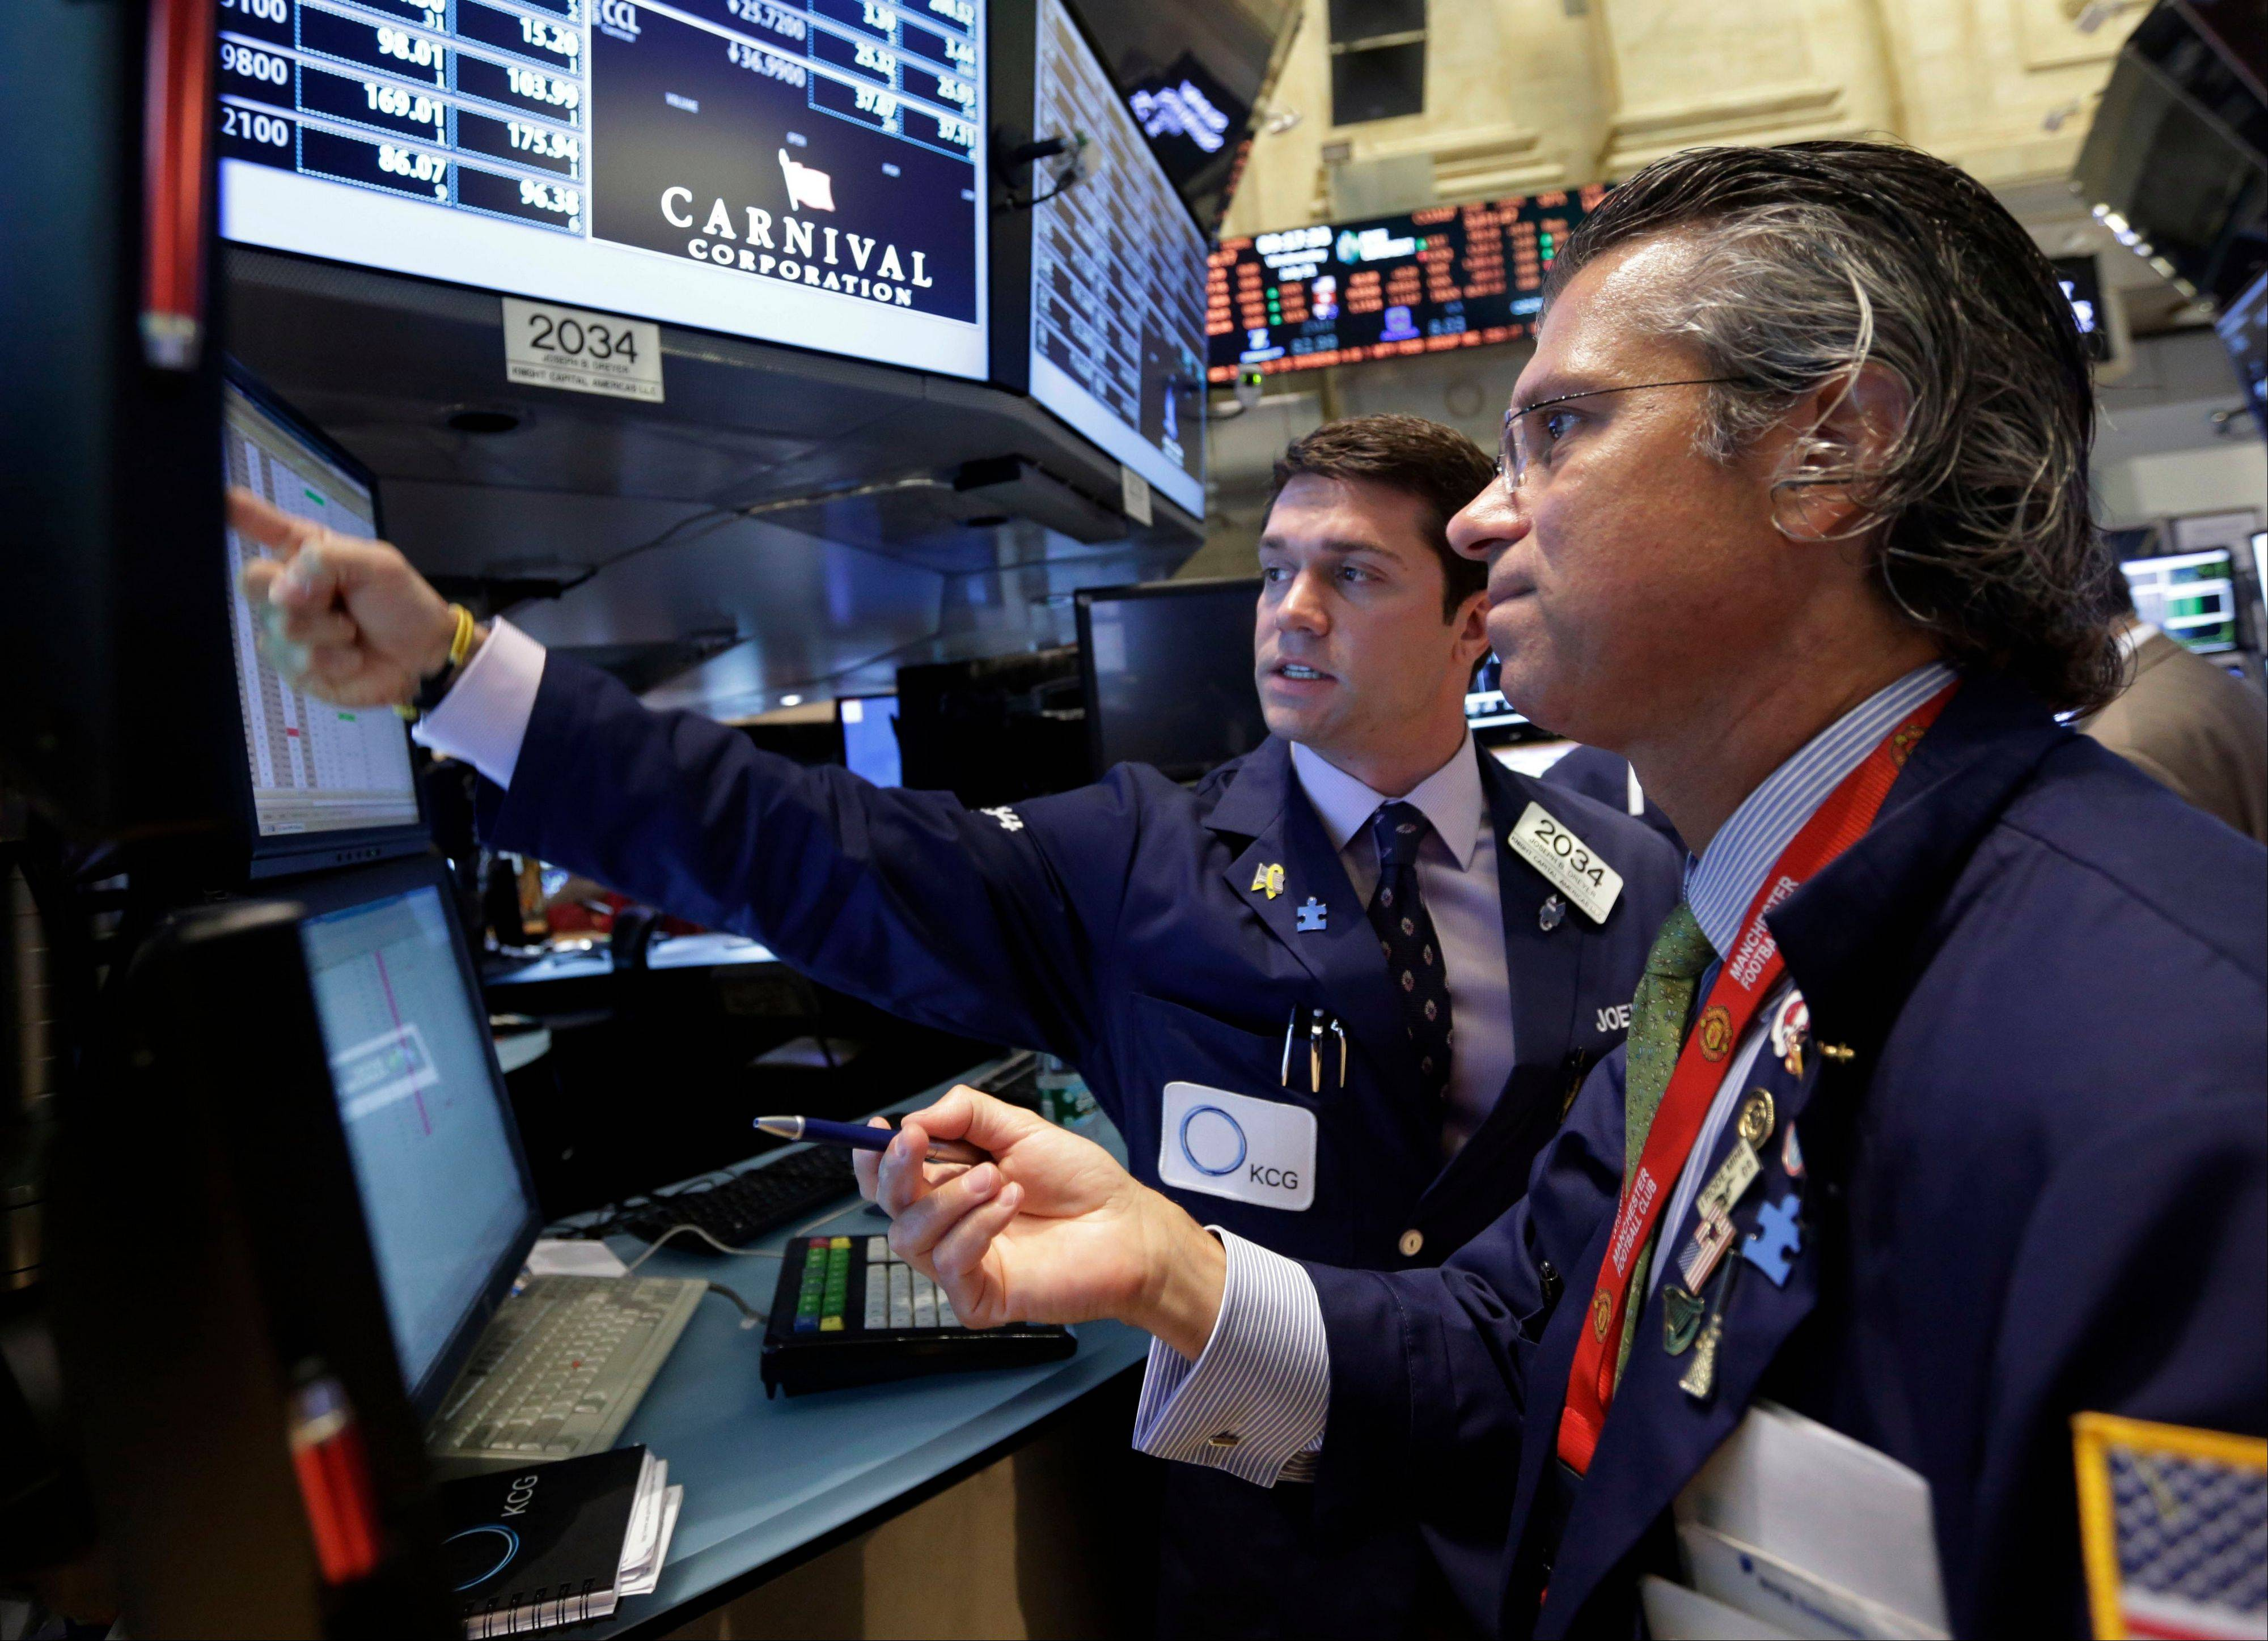 In this Wednesday, July 31, 2013 file photo, specialists Joseph Dreyer, left, and Donald Civitanova work on the floor of the New York Stock Exchange. After a losing week for the three major stock indexes, investors are hoping for a rebound on Wall Street, Monday, Aug. 12, 2013.